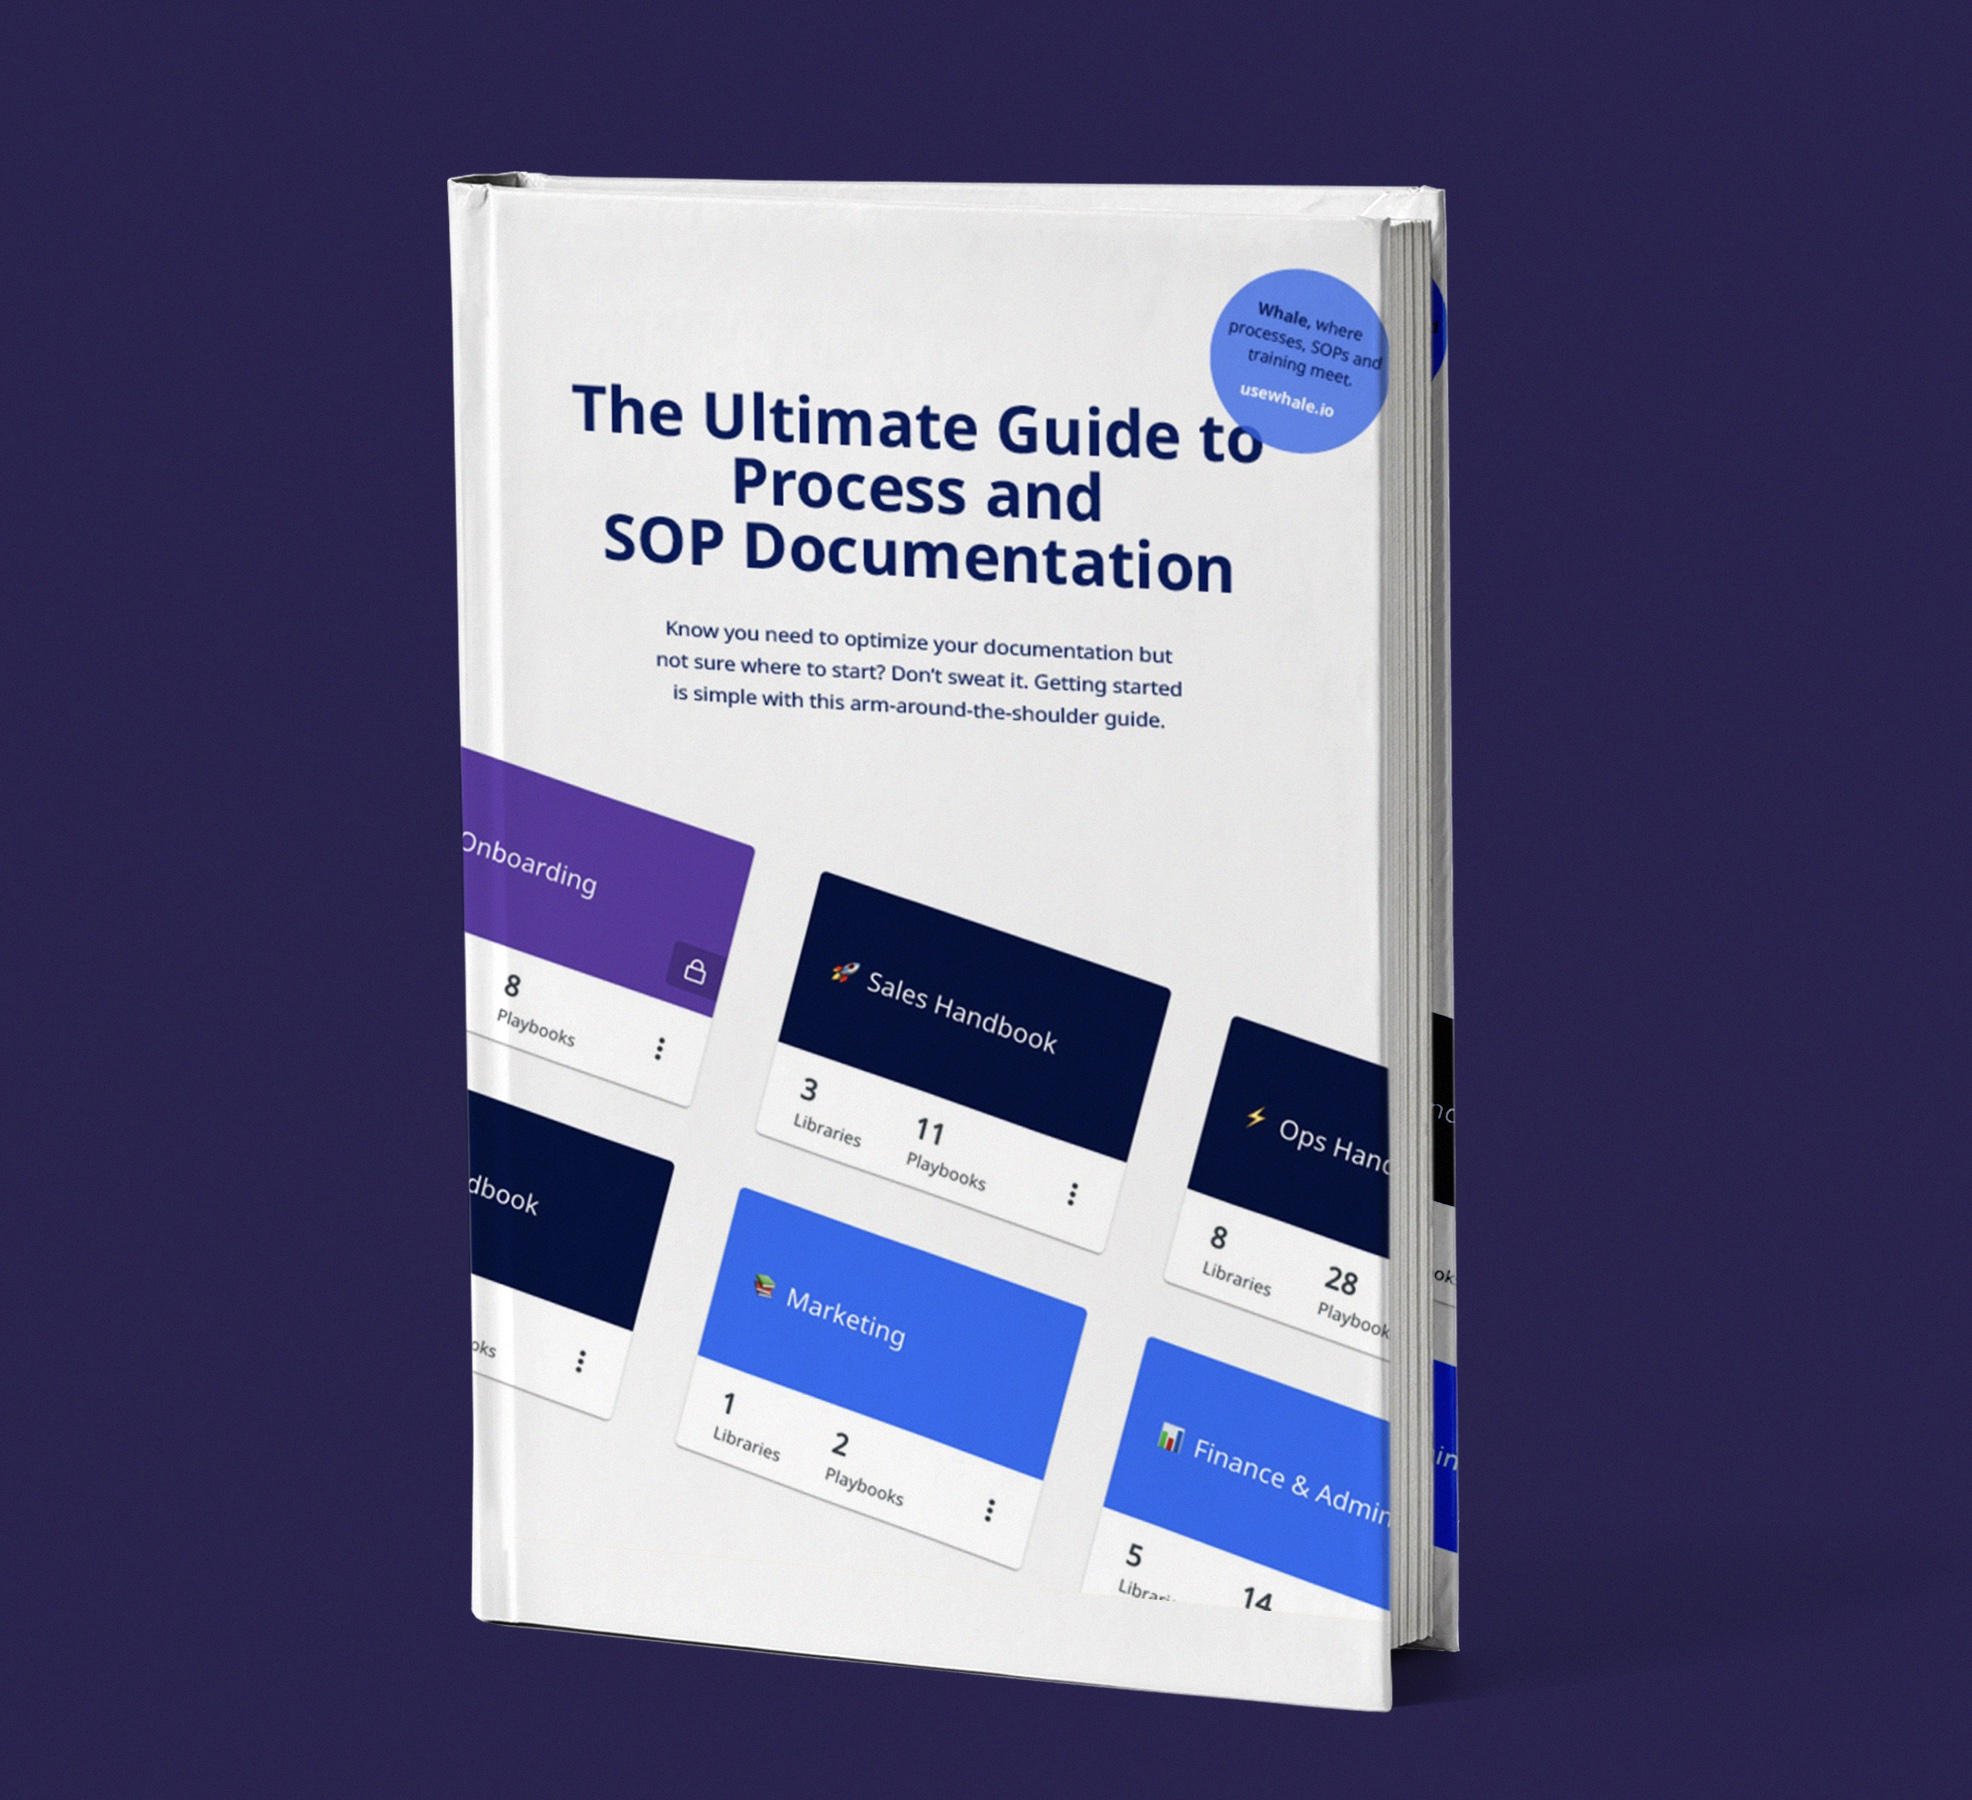 The Ultimate Guide to Process and SOP Documentation